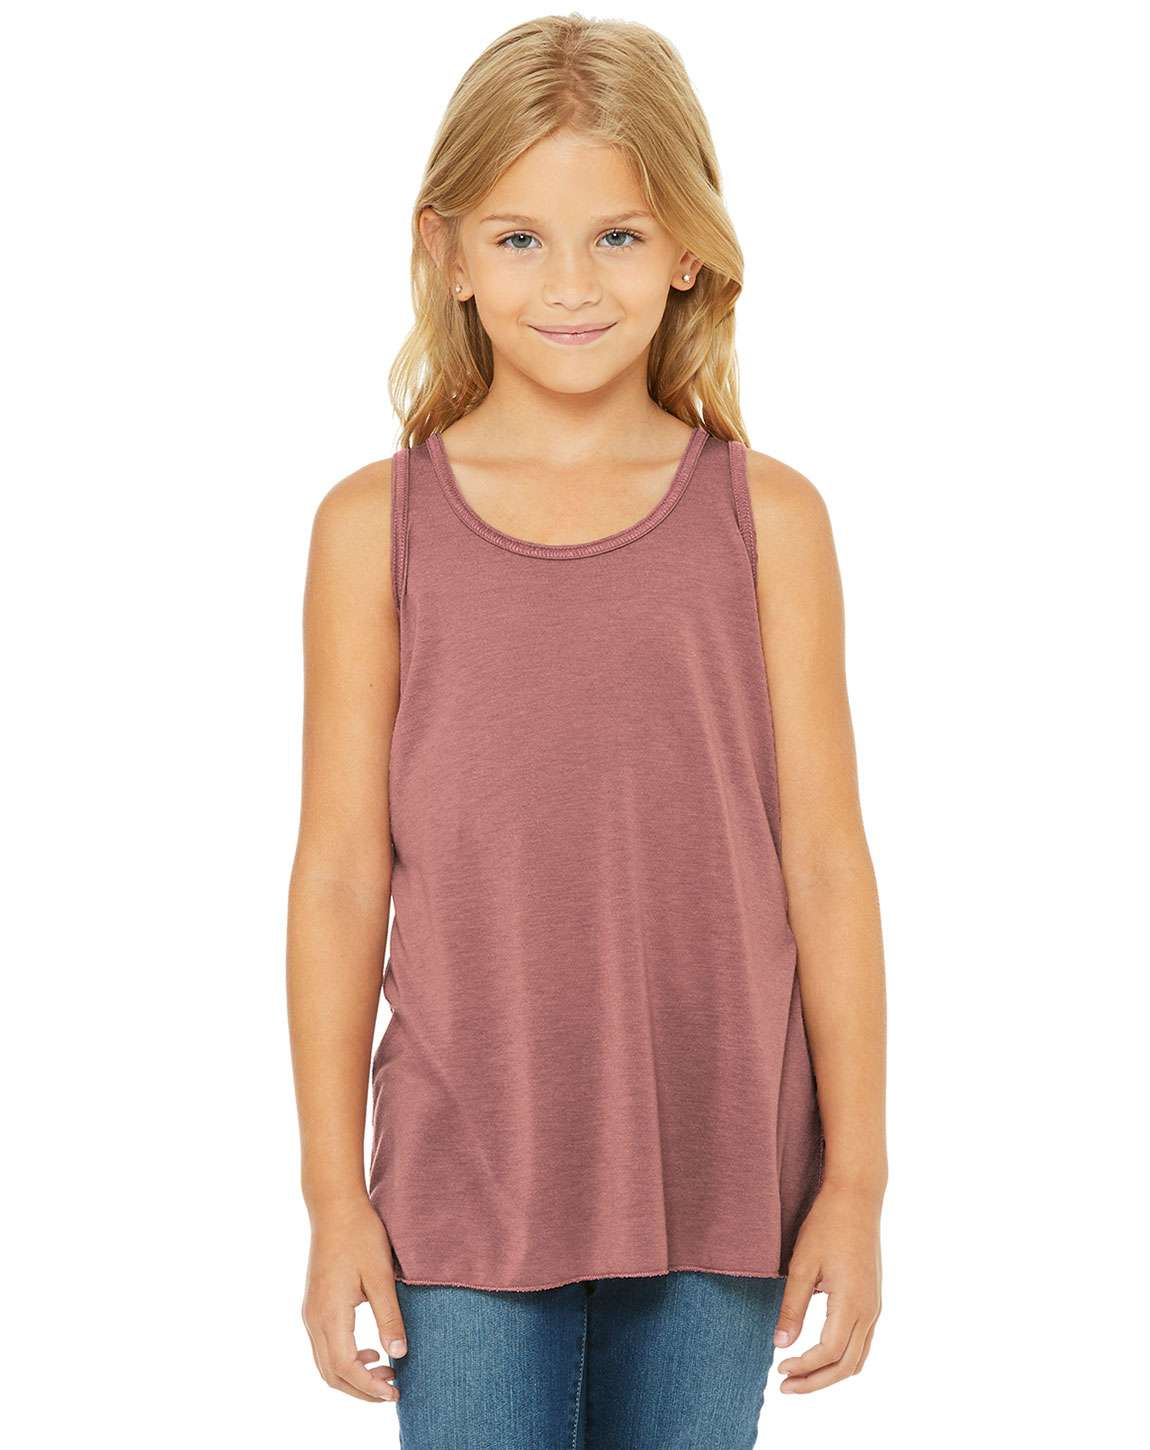 Bella + Canvas B8800Y Youth Flowy Racerback Tank